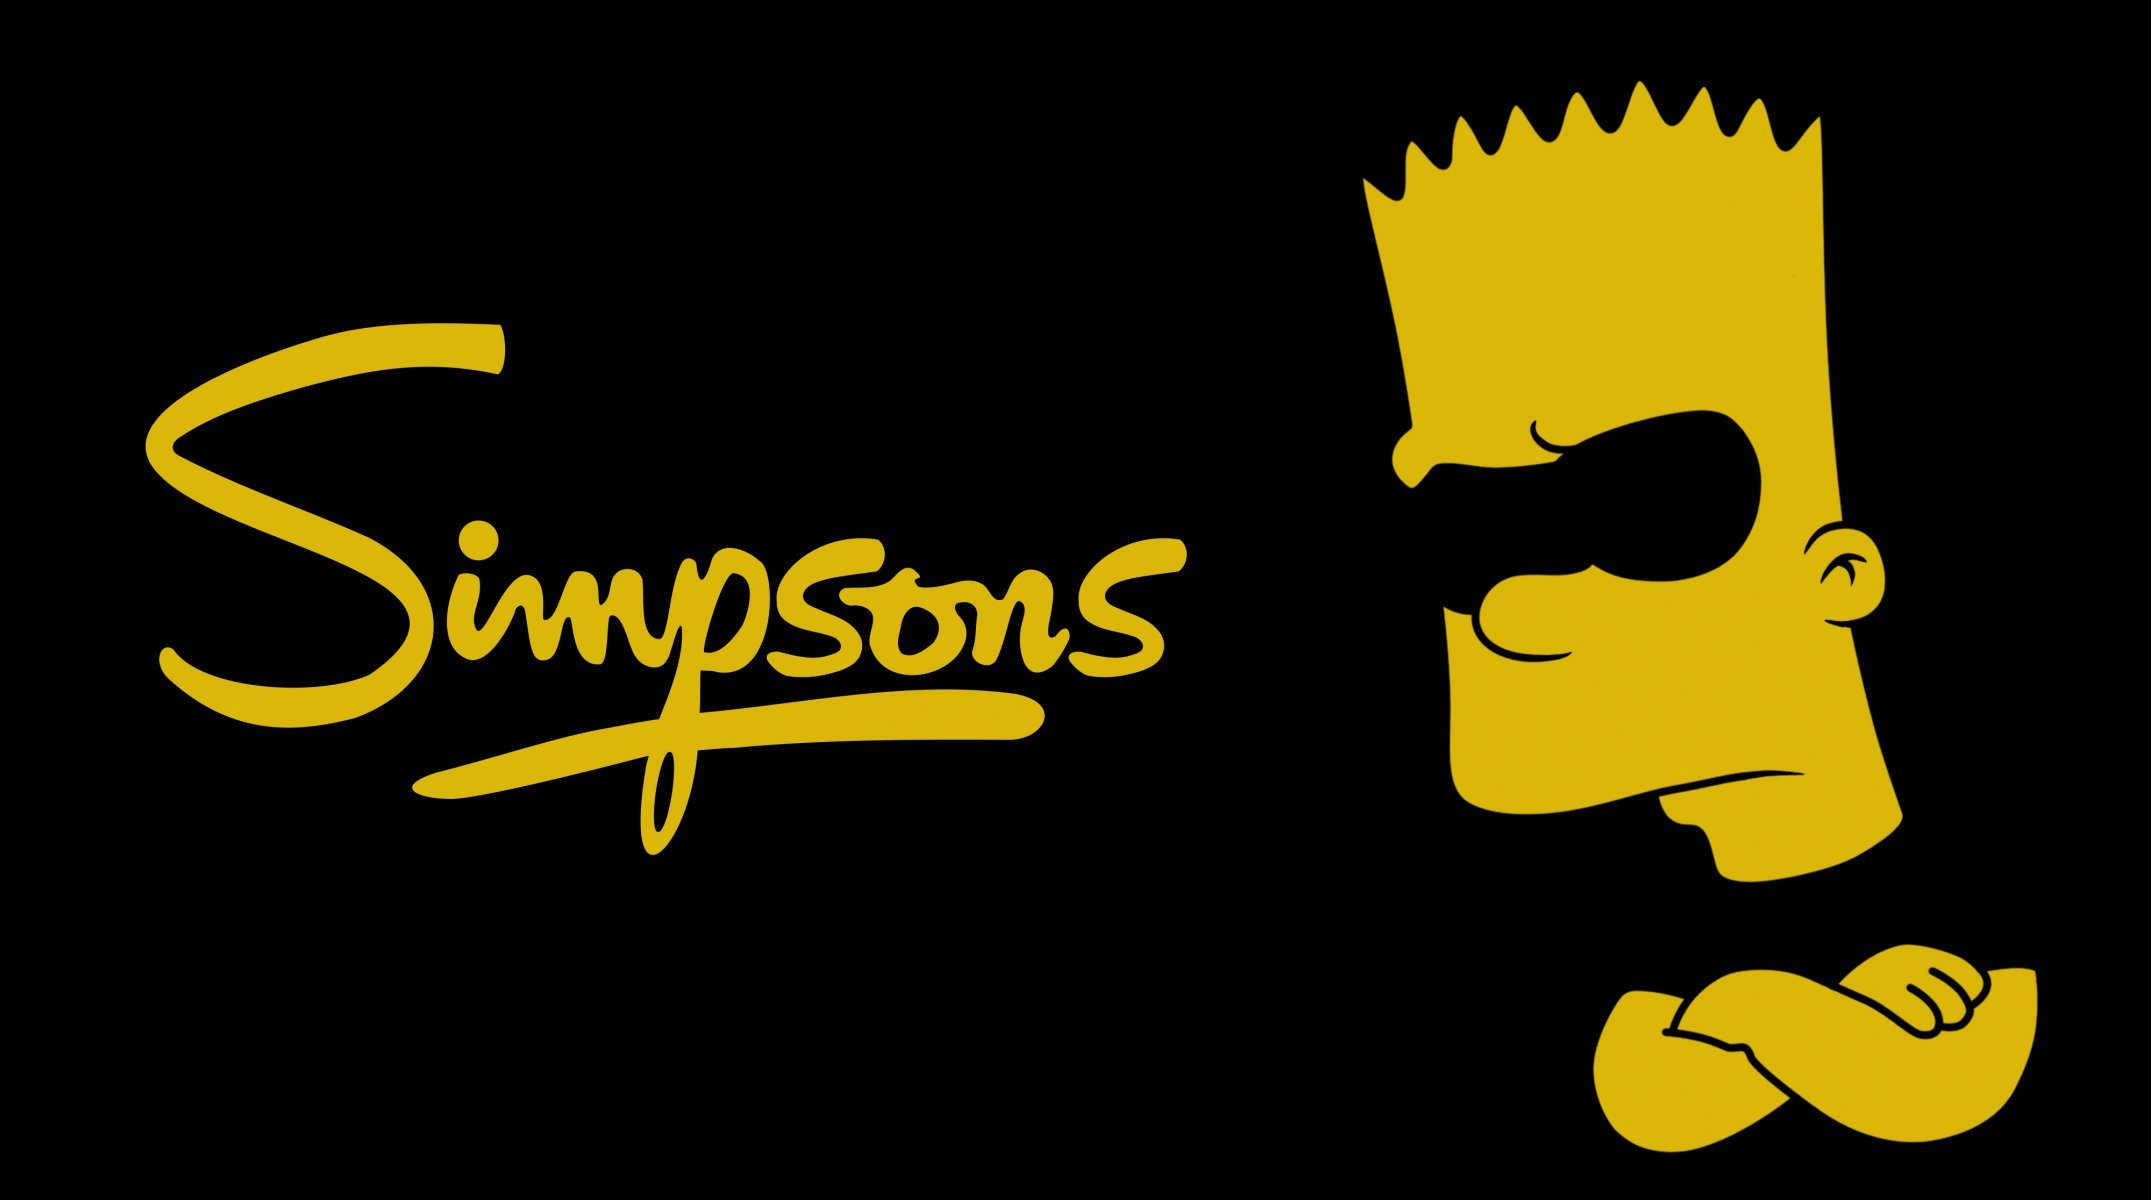 bart simpson hd wallpapers